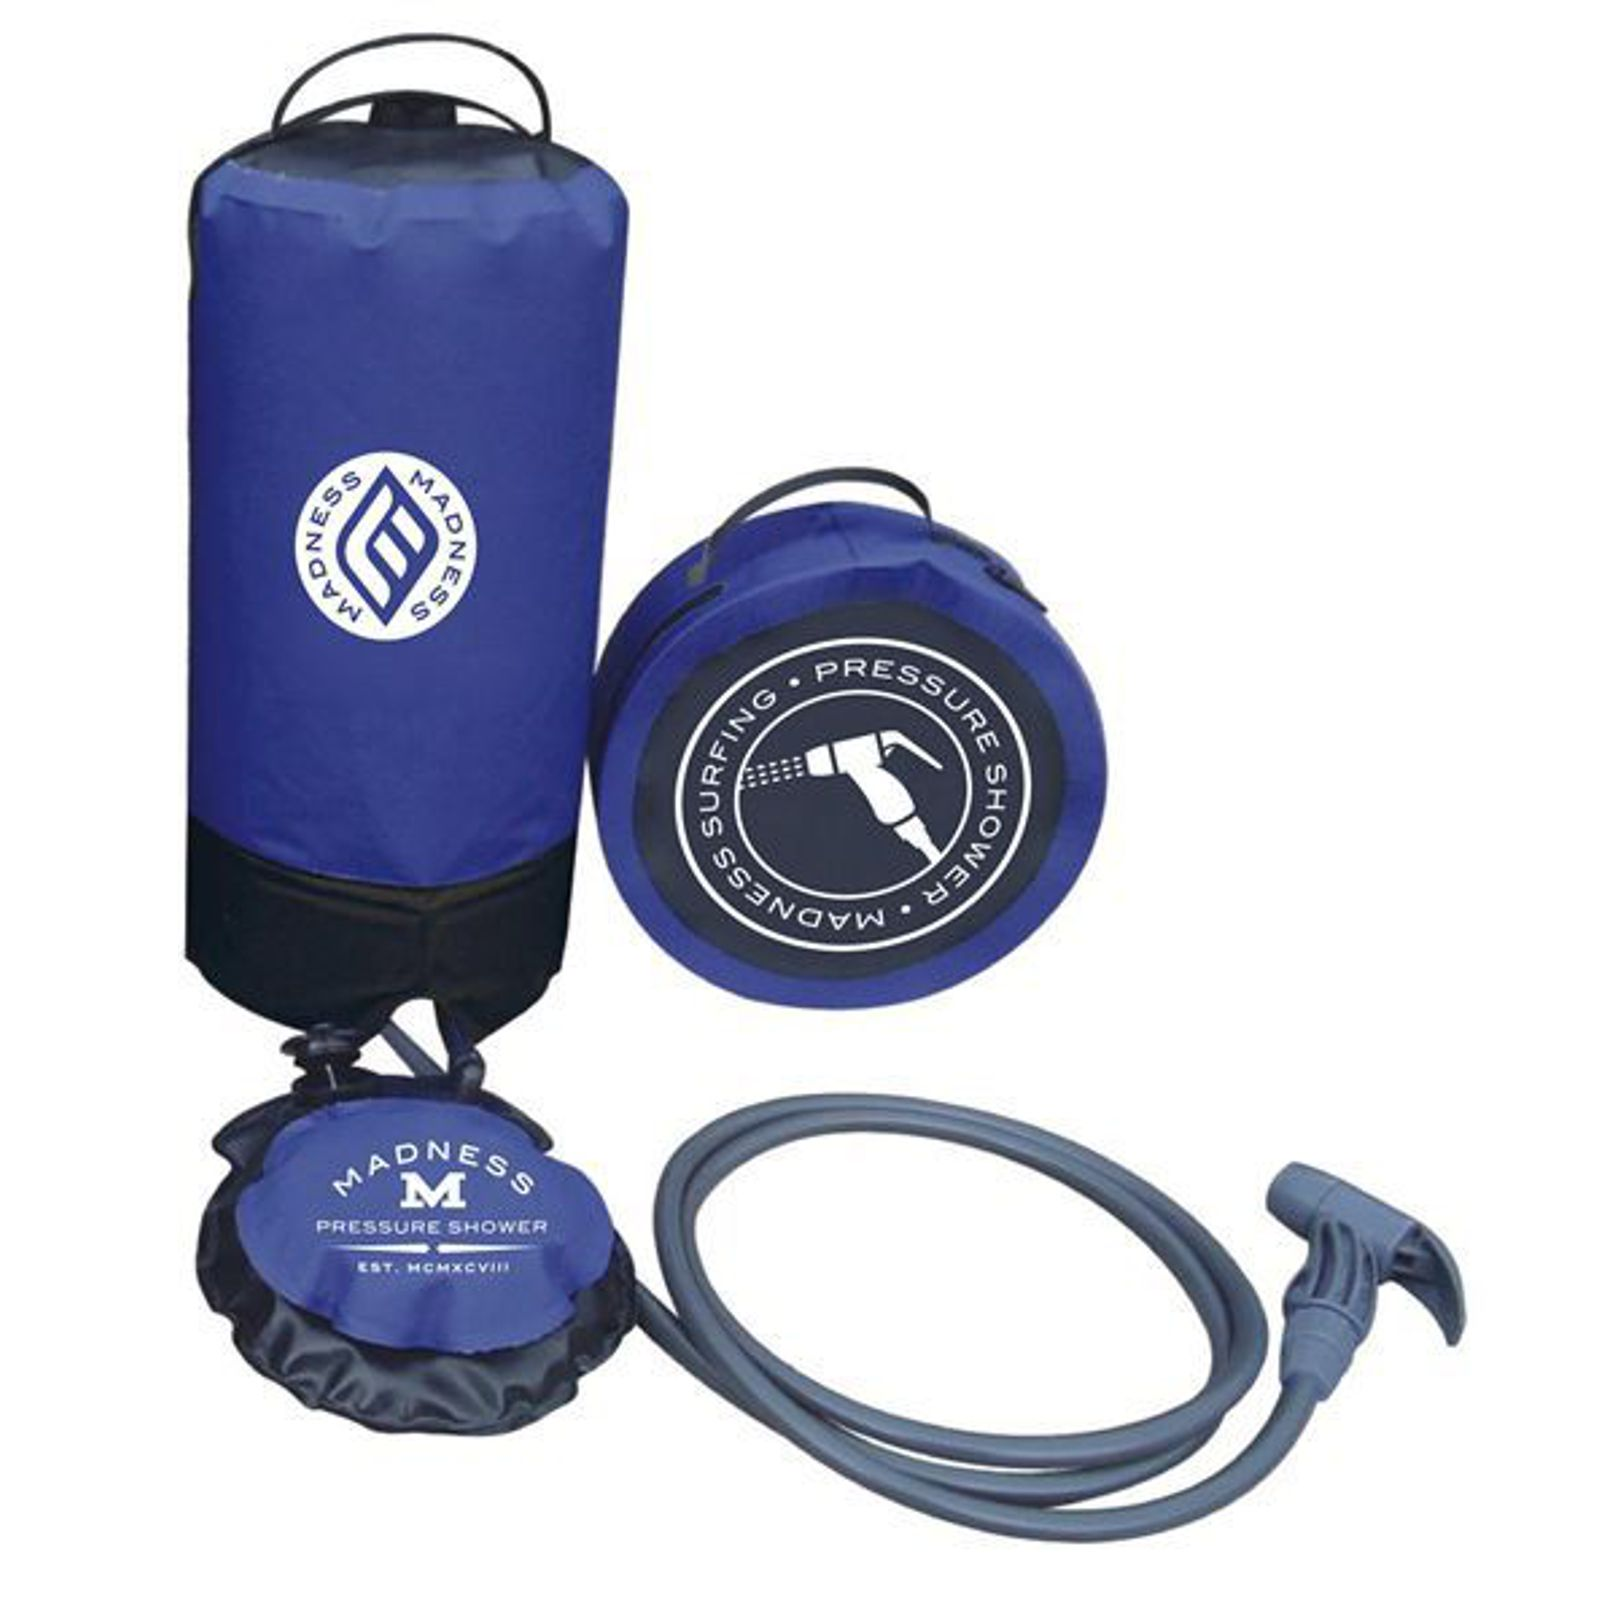 MADNESS Pressure Shower mobile surf Dusche 10-15 L